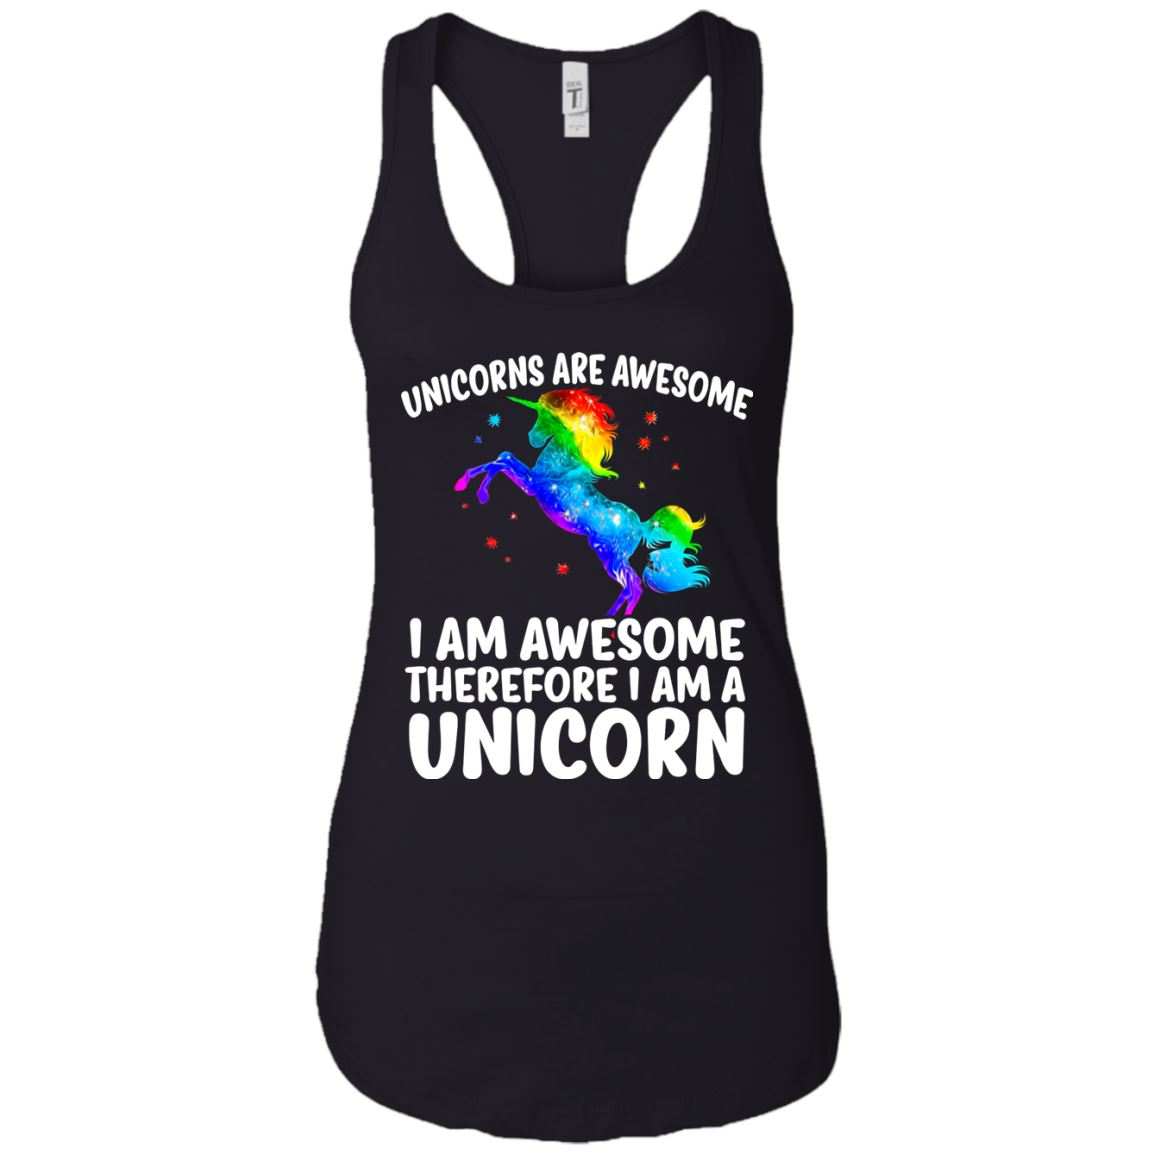 Unicorns Are Awesome Ladies Racerback Tank Apparel Black X-Small